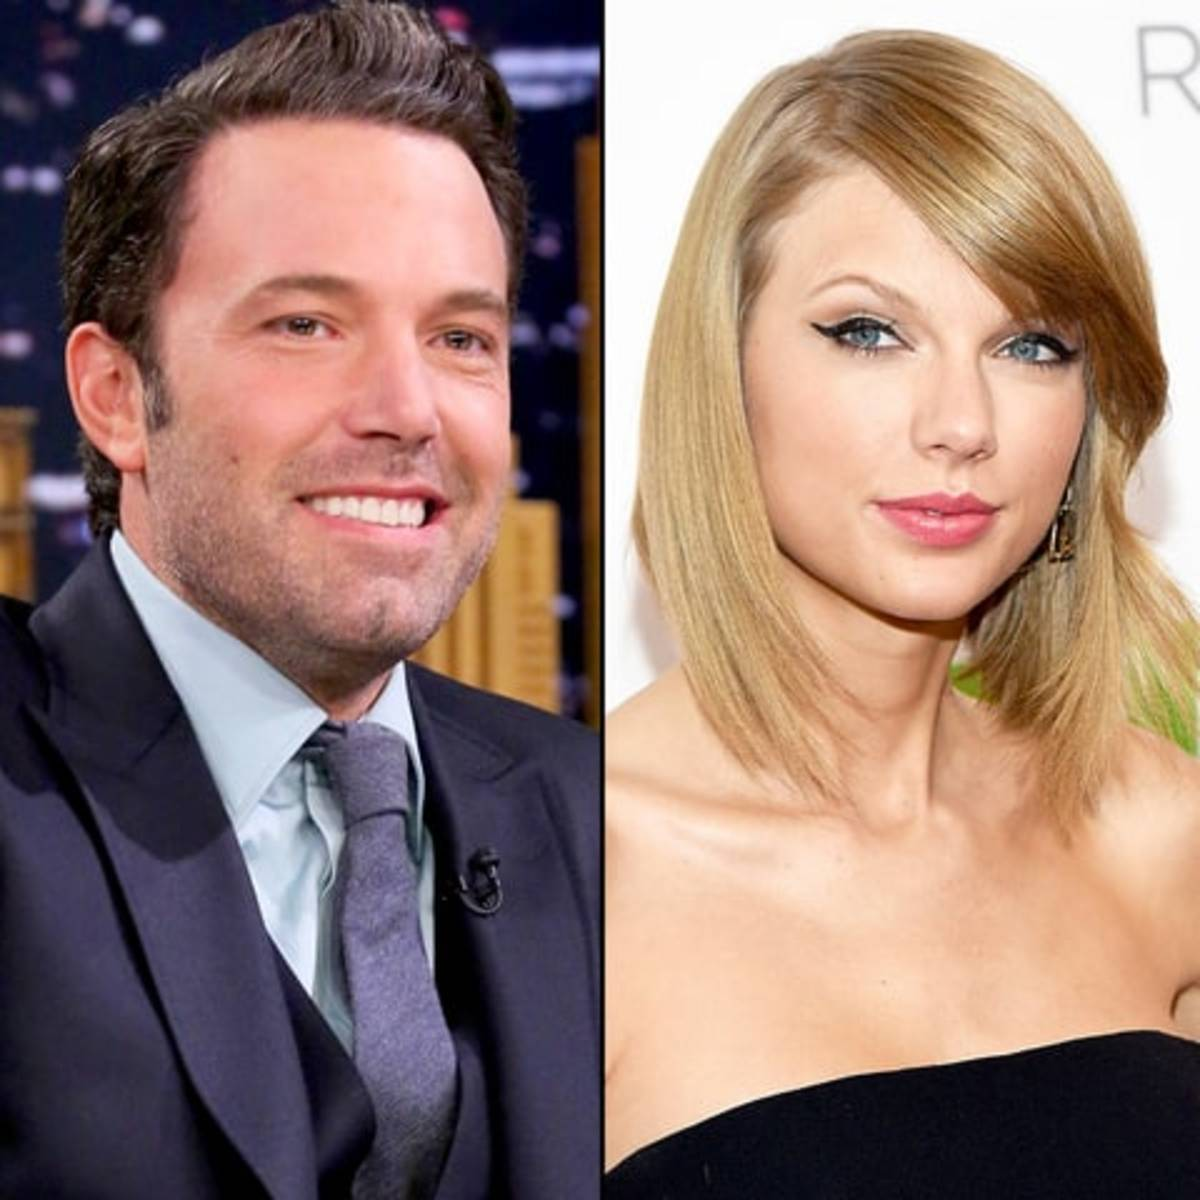 ben-affleck-taylor-swift-zoom-78c9f216-a3c9-4b2e-9fb1-fa194ca85cb7